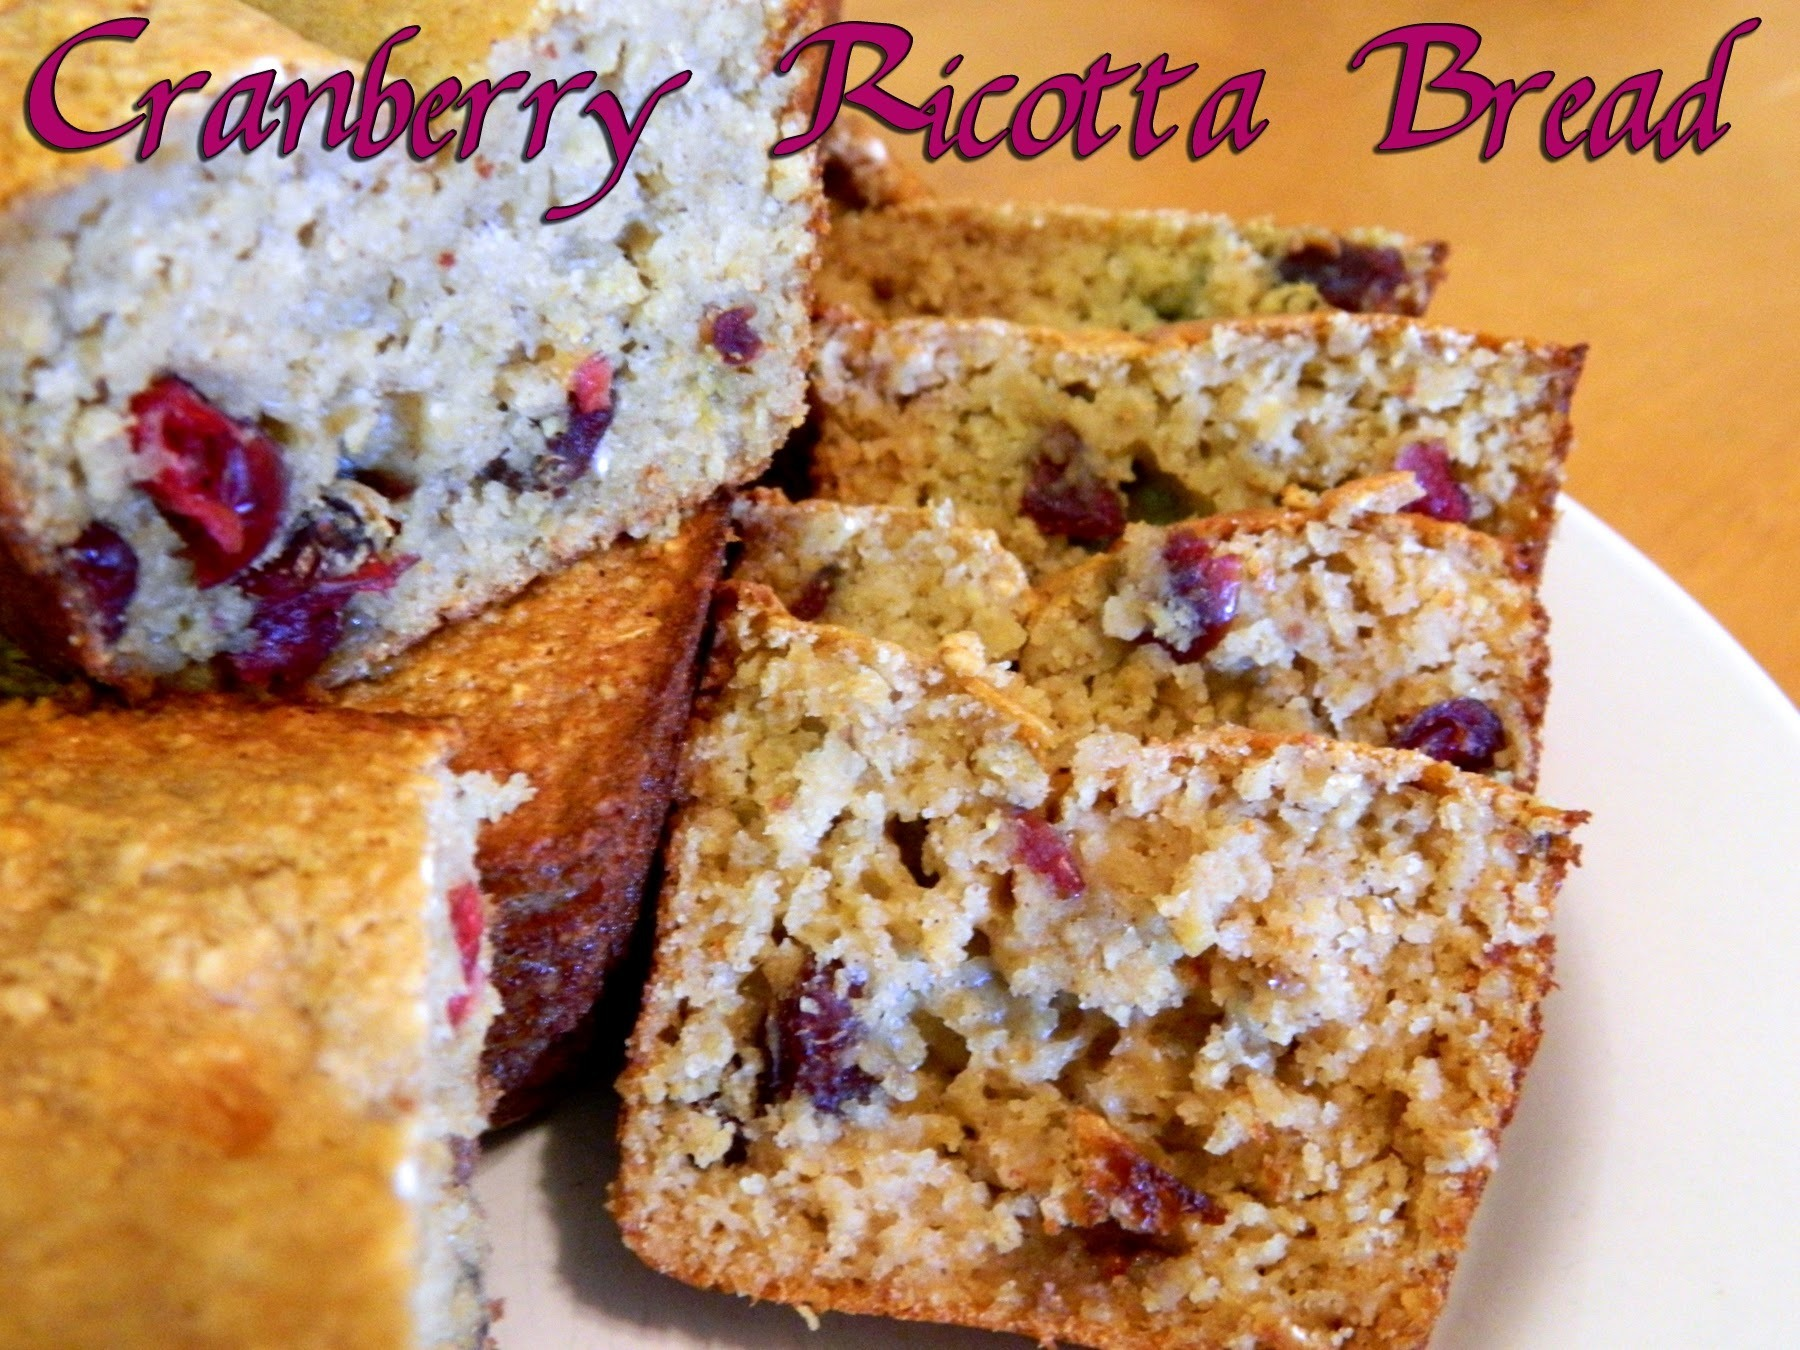 Cranberry Ricotta Bread